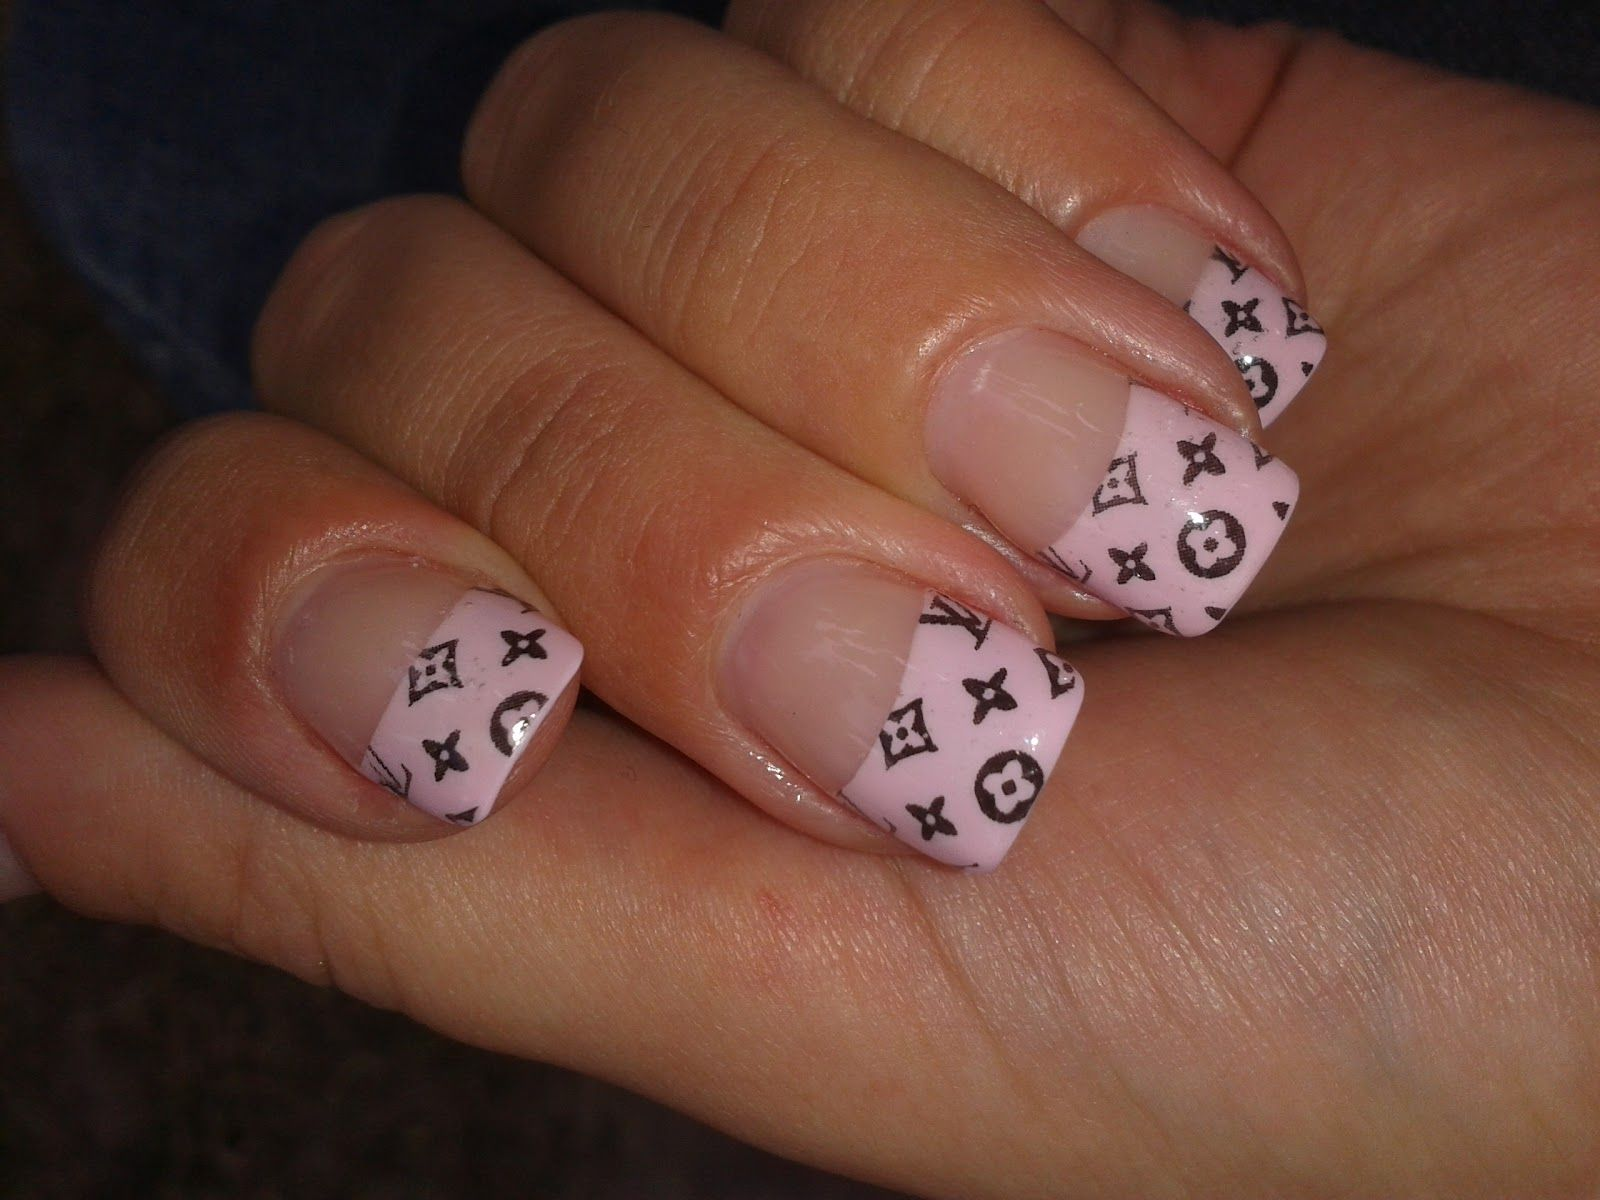 Louis Vuitton Designer Nail Tips | Tina´s Strudel: Louis Vuitton ...